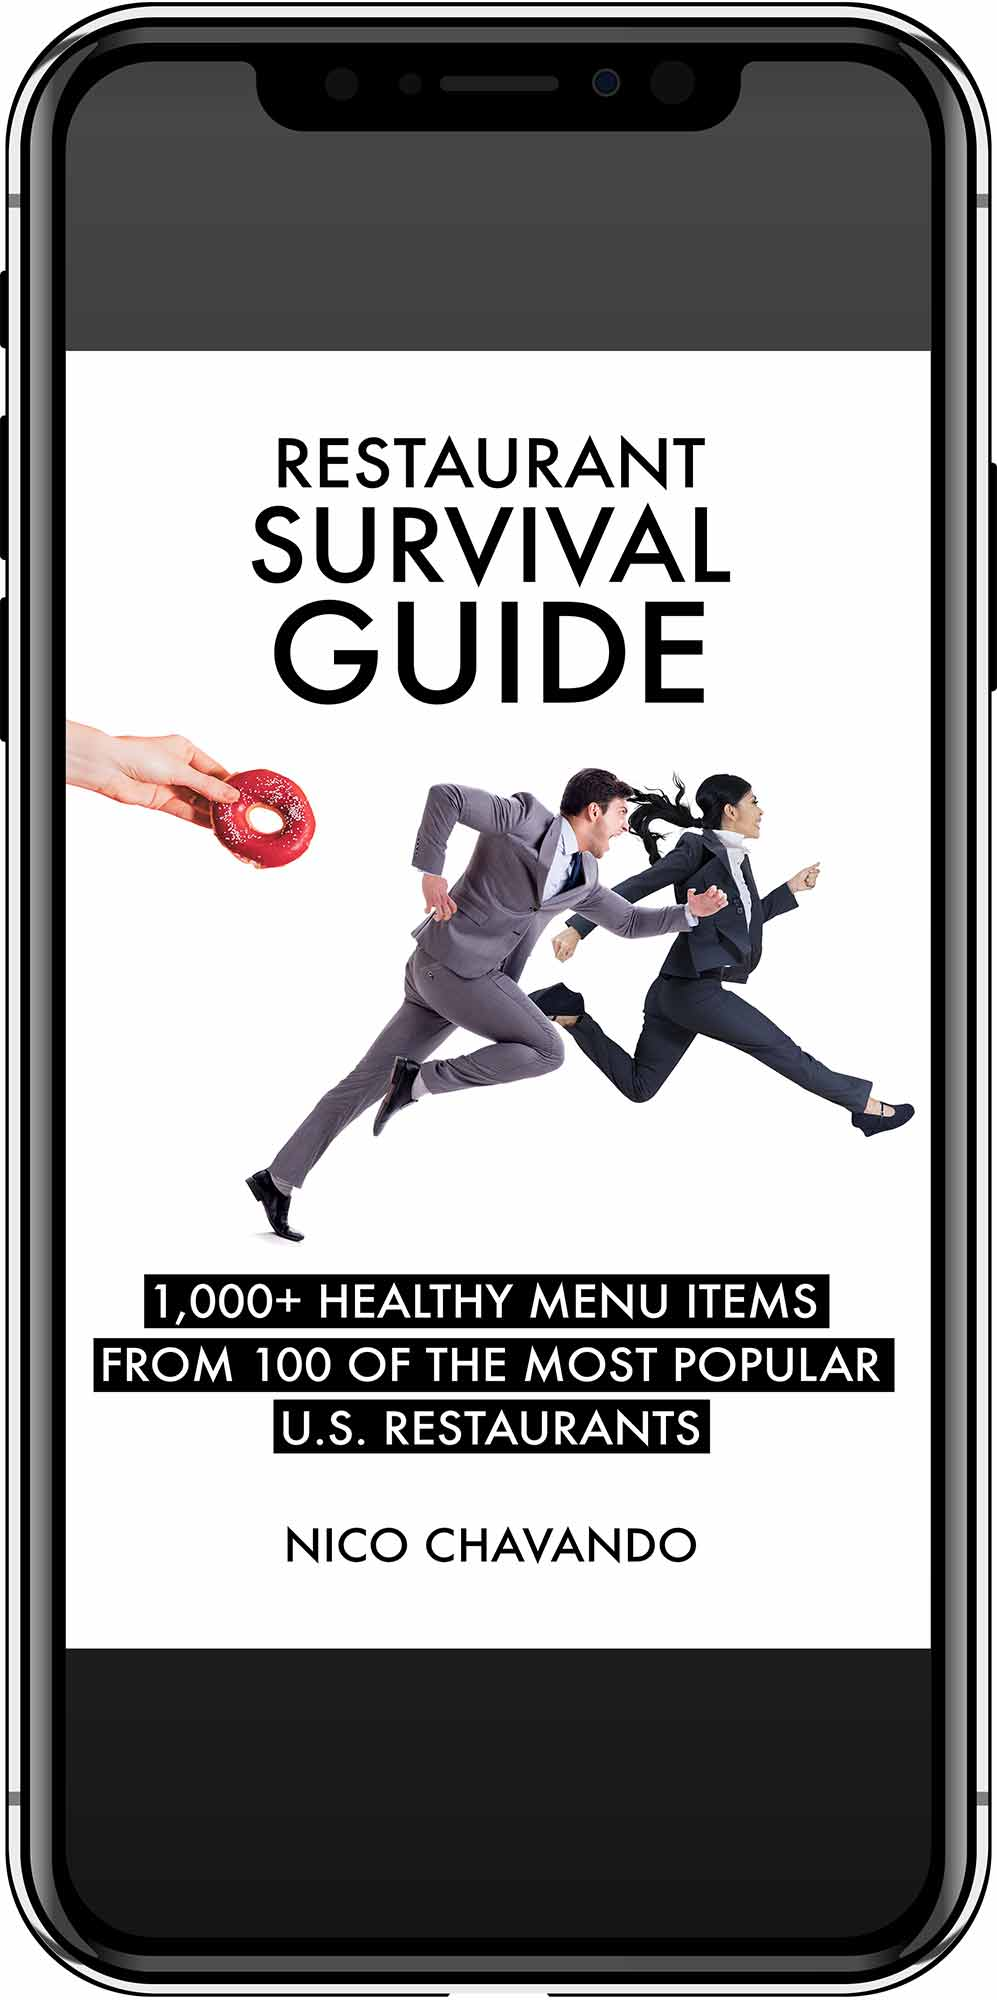 Iphone Restaurant Survival Guide Small